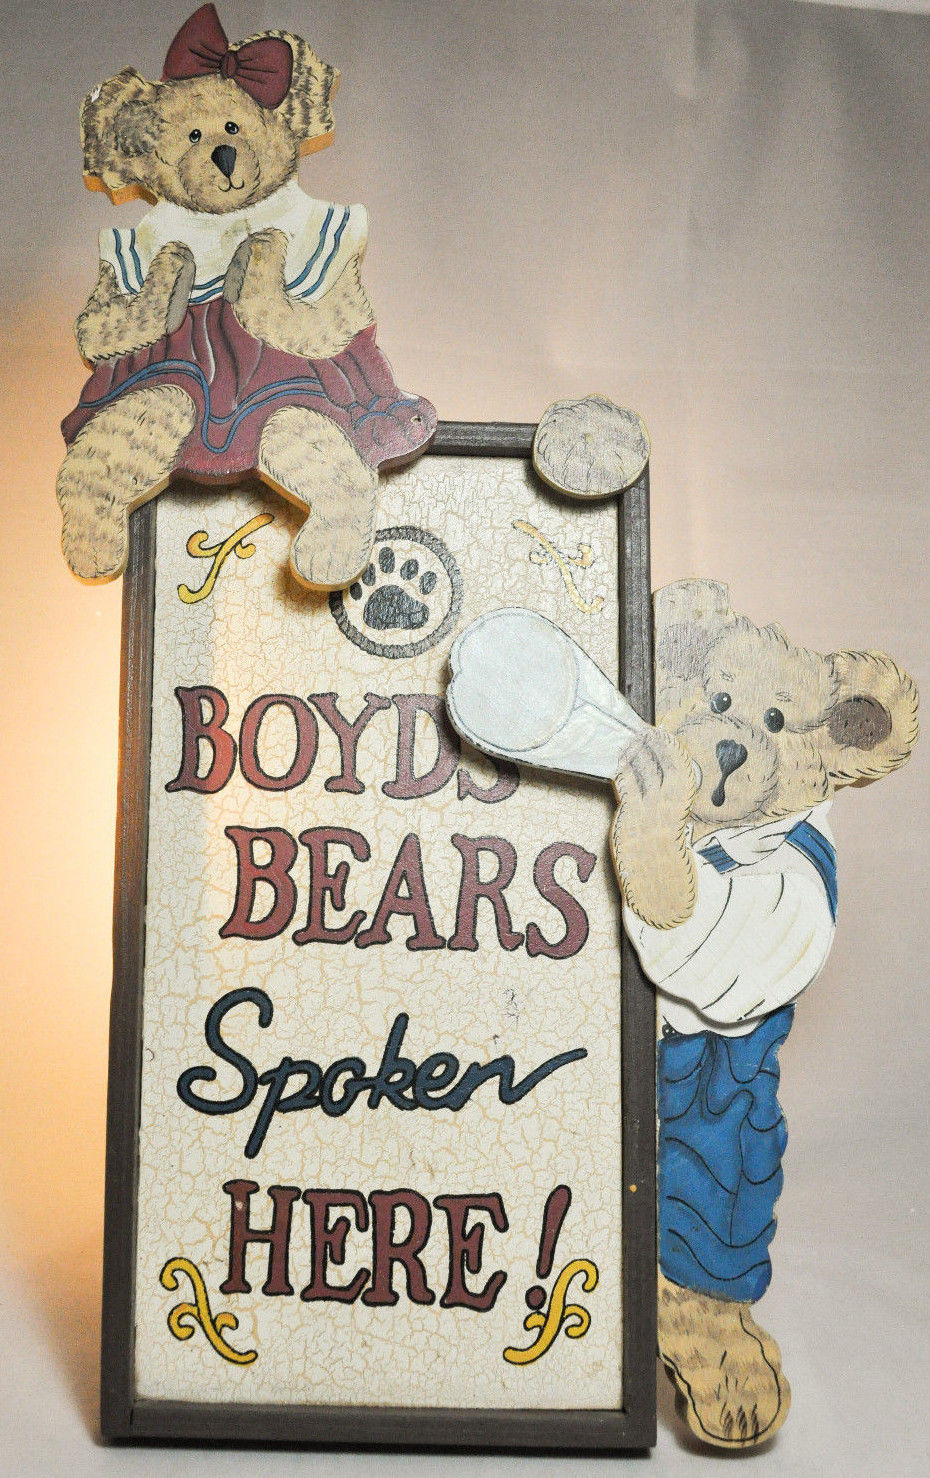 "Boyds Bears: Boyds Bears Spoken Here - Display Stand - # 654900 - 15"" x 8 1/2"" image 2"